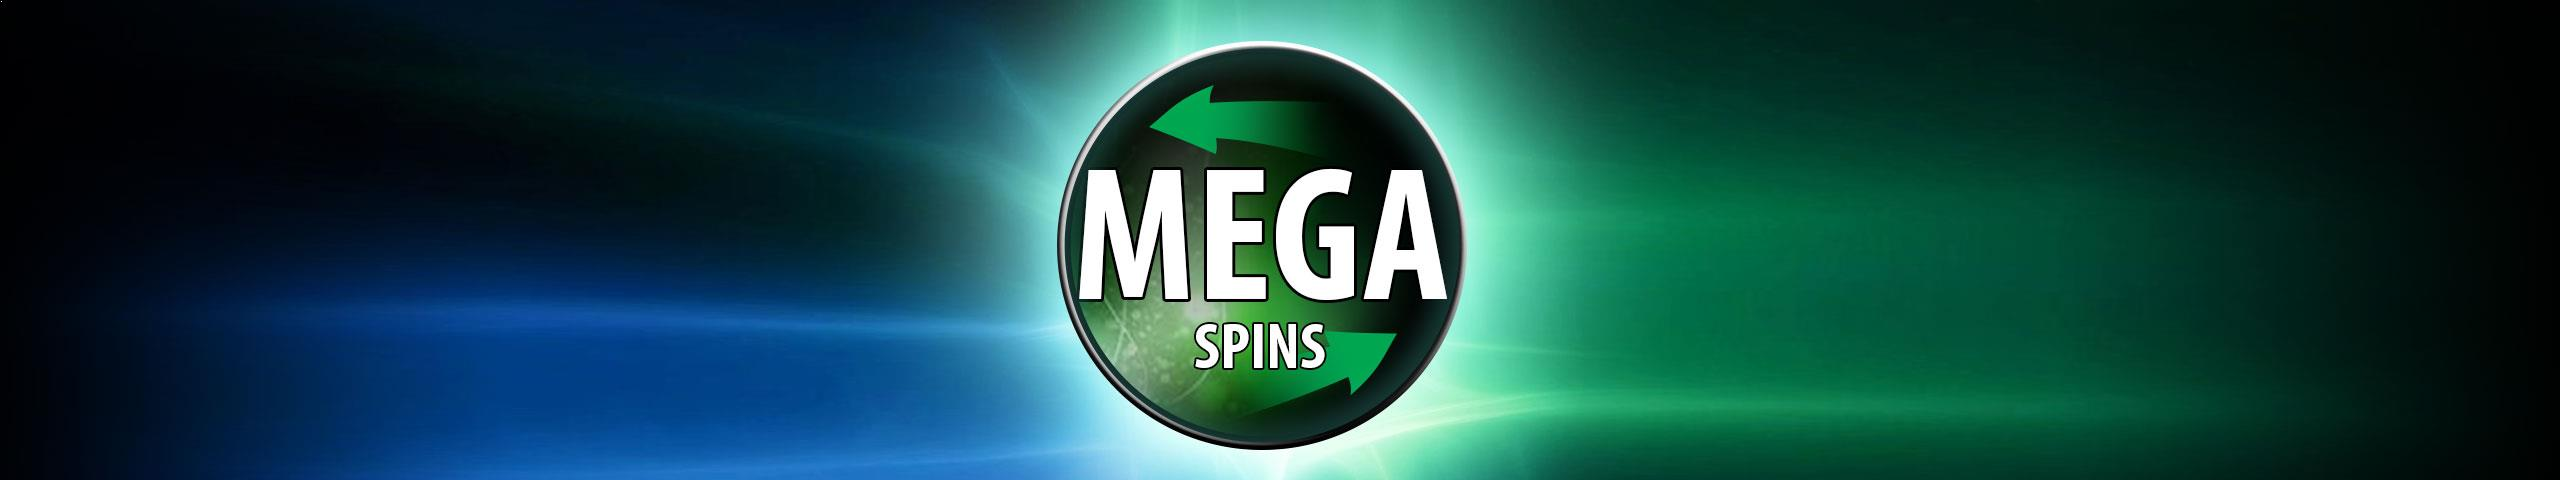 Mega Spins Microgaming jocuri slot slider